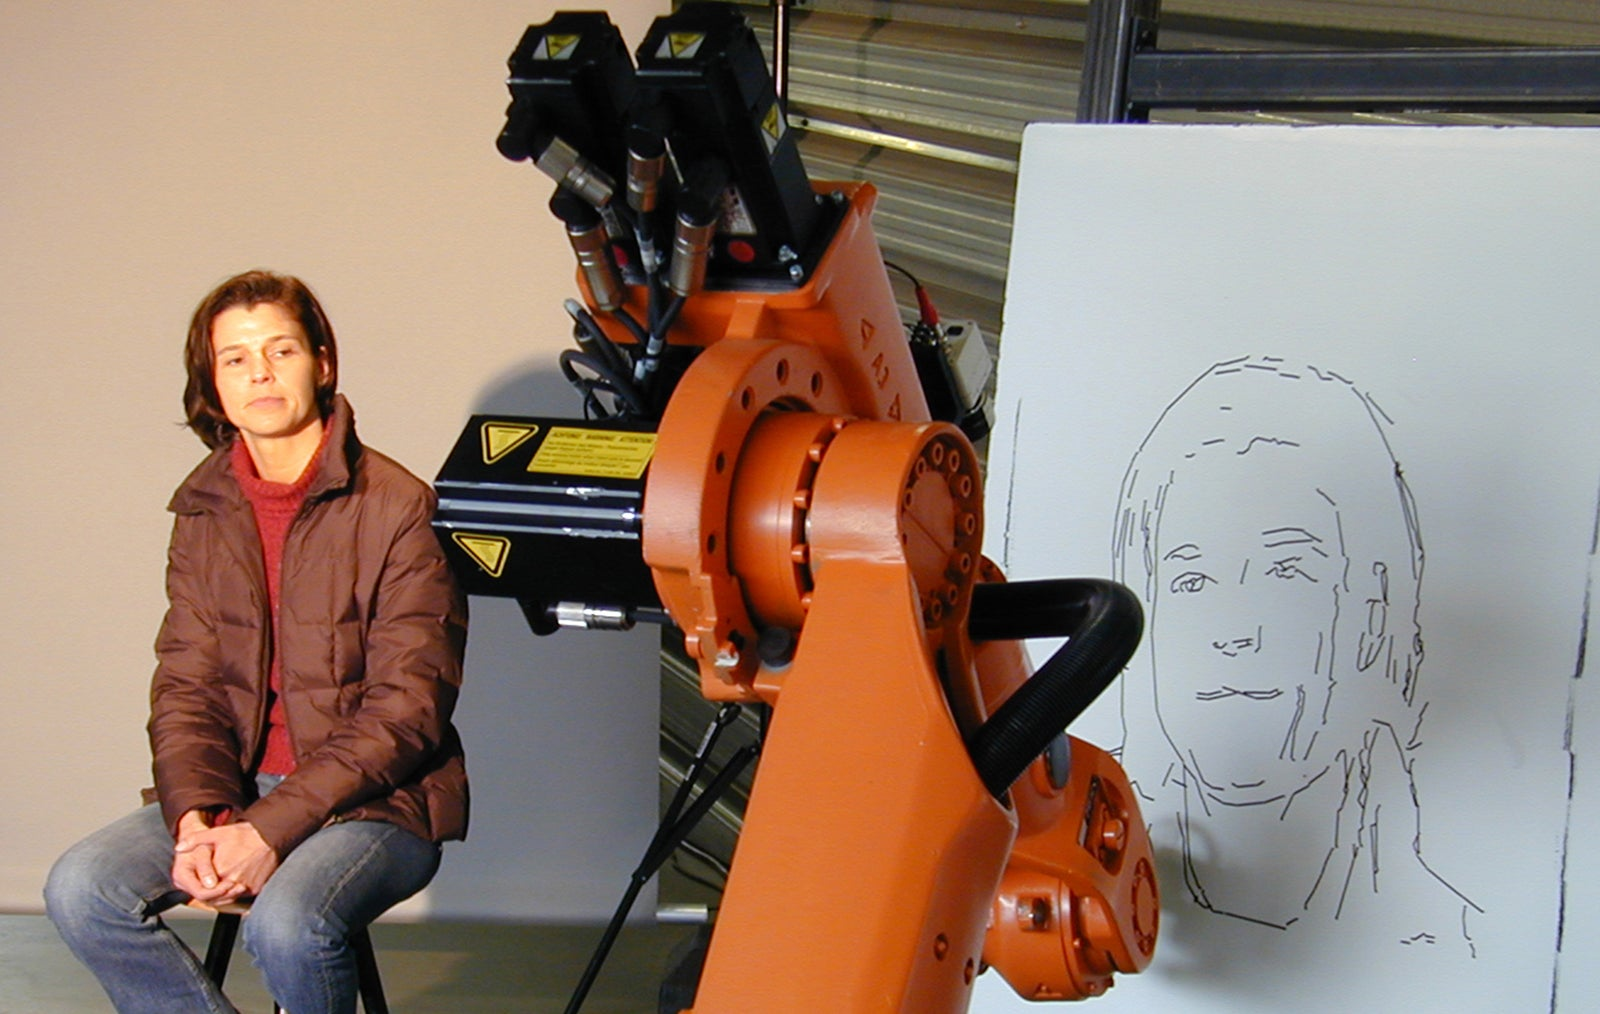 German Industrial Bot Takes Up the Art of Portraiture